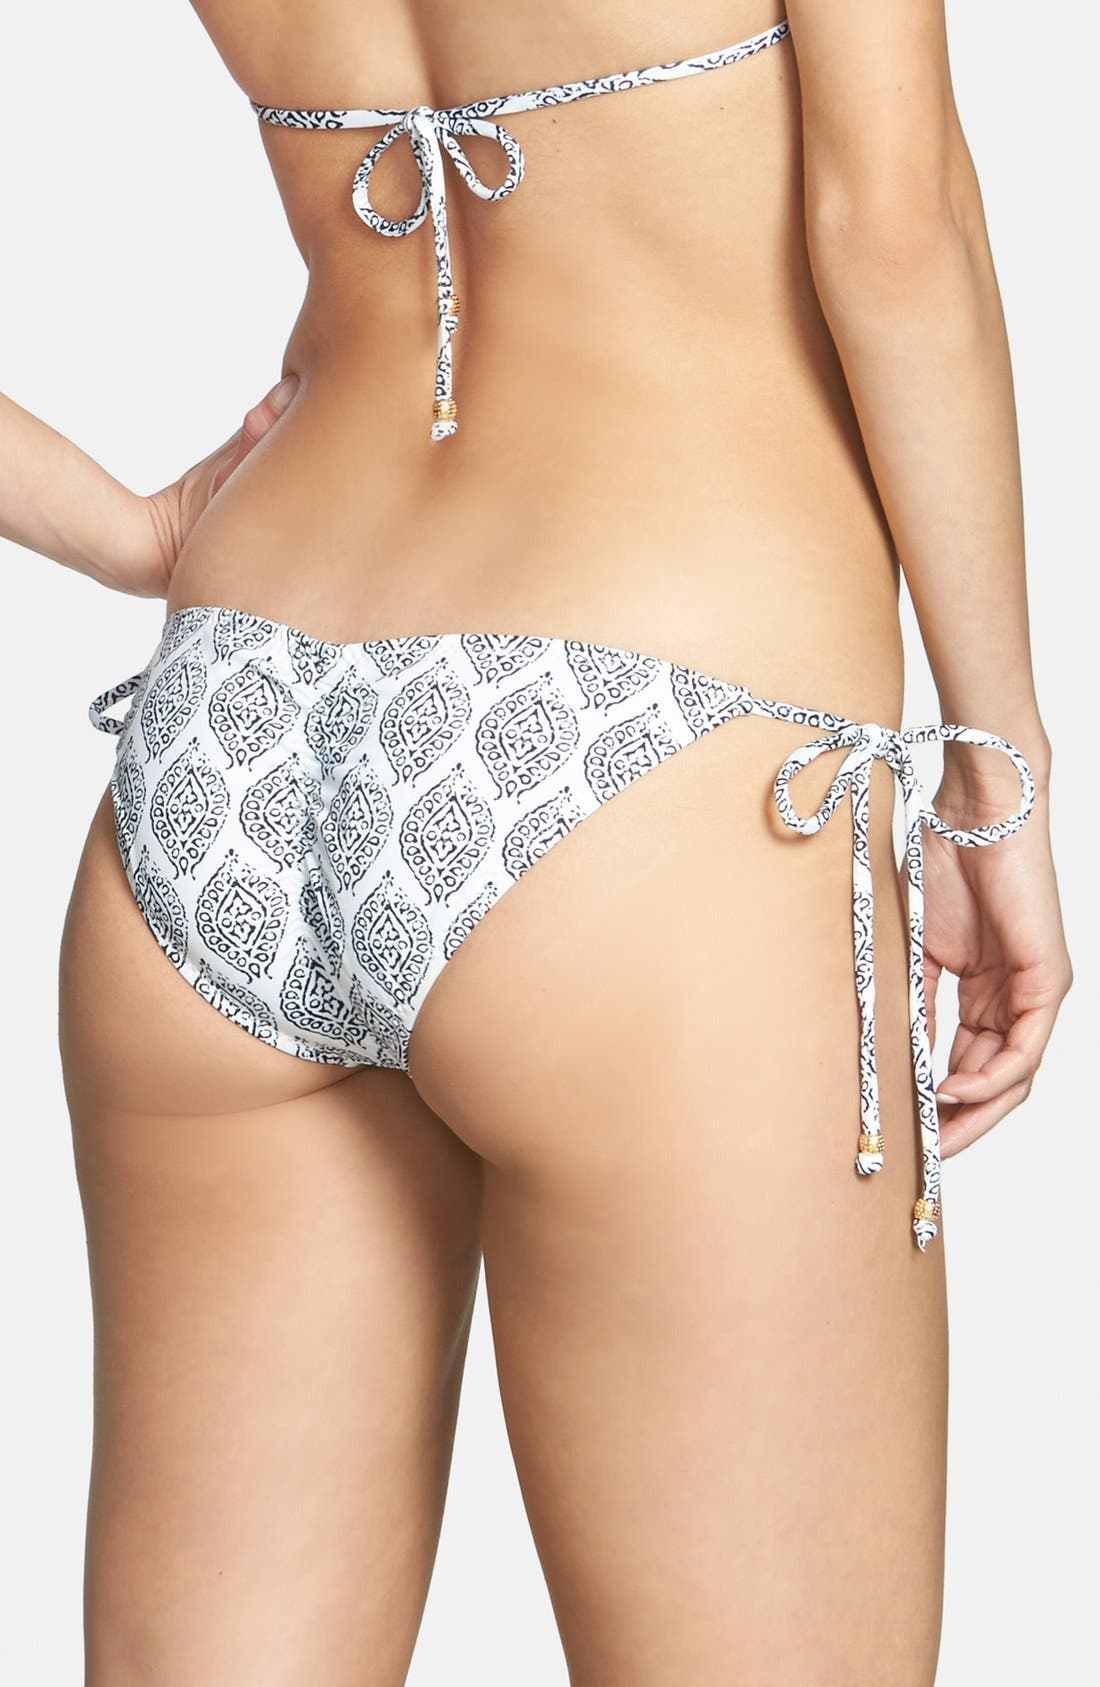 Alternate Image 1 Selected - Eberjey 'Batik Batik Kate' Side Tie Bikini Bottoms